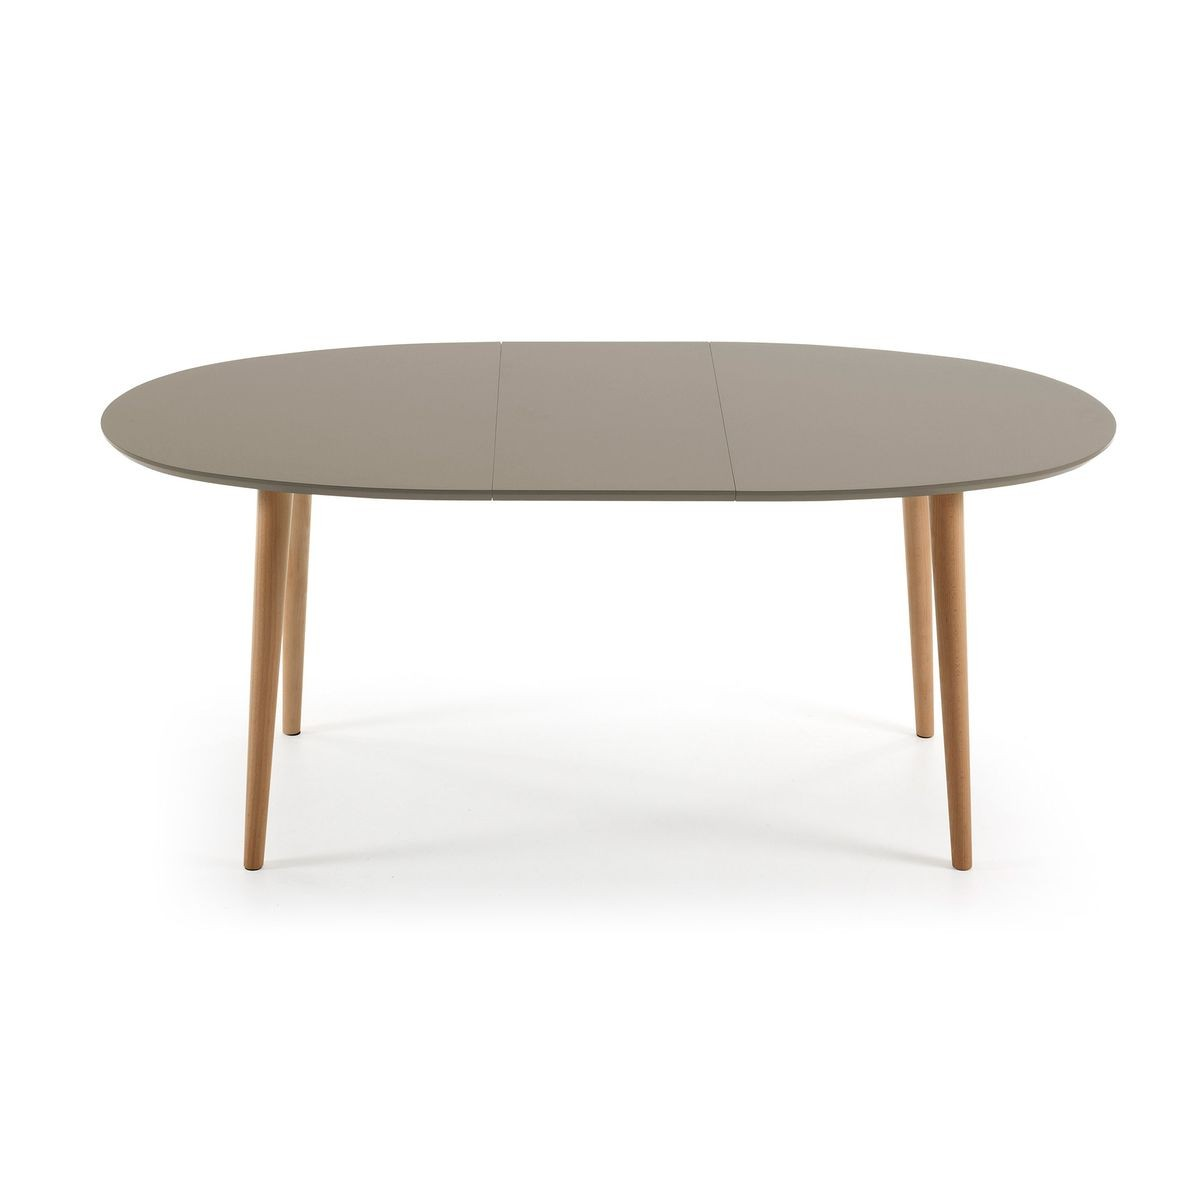 Ovale Taille Table Marron 90cm 140220X Oqui Extensible F1KuTlc3J